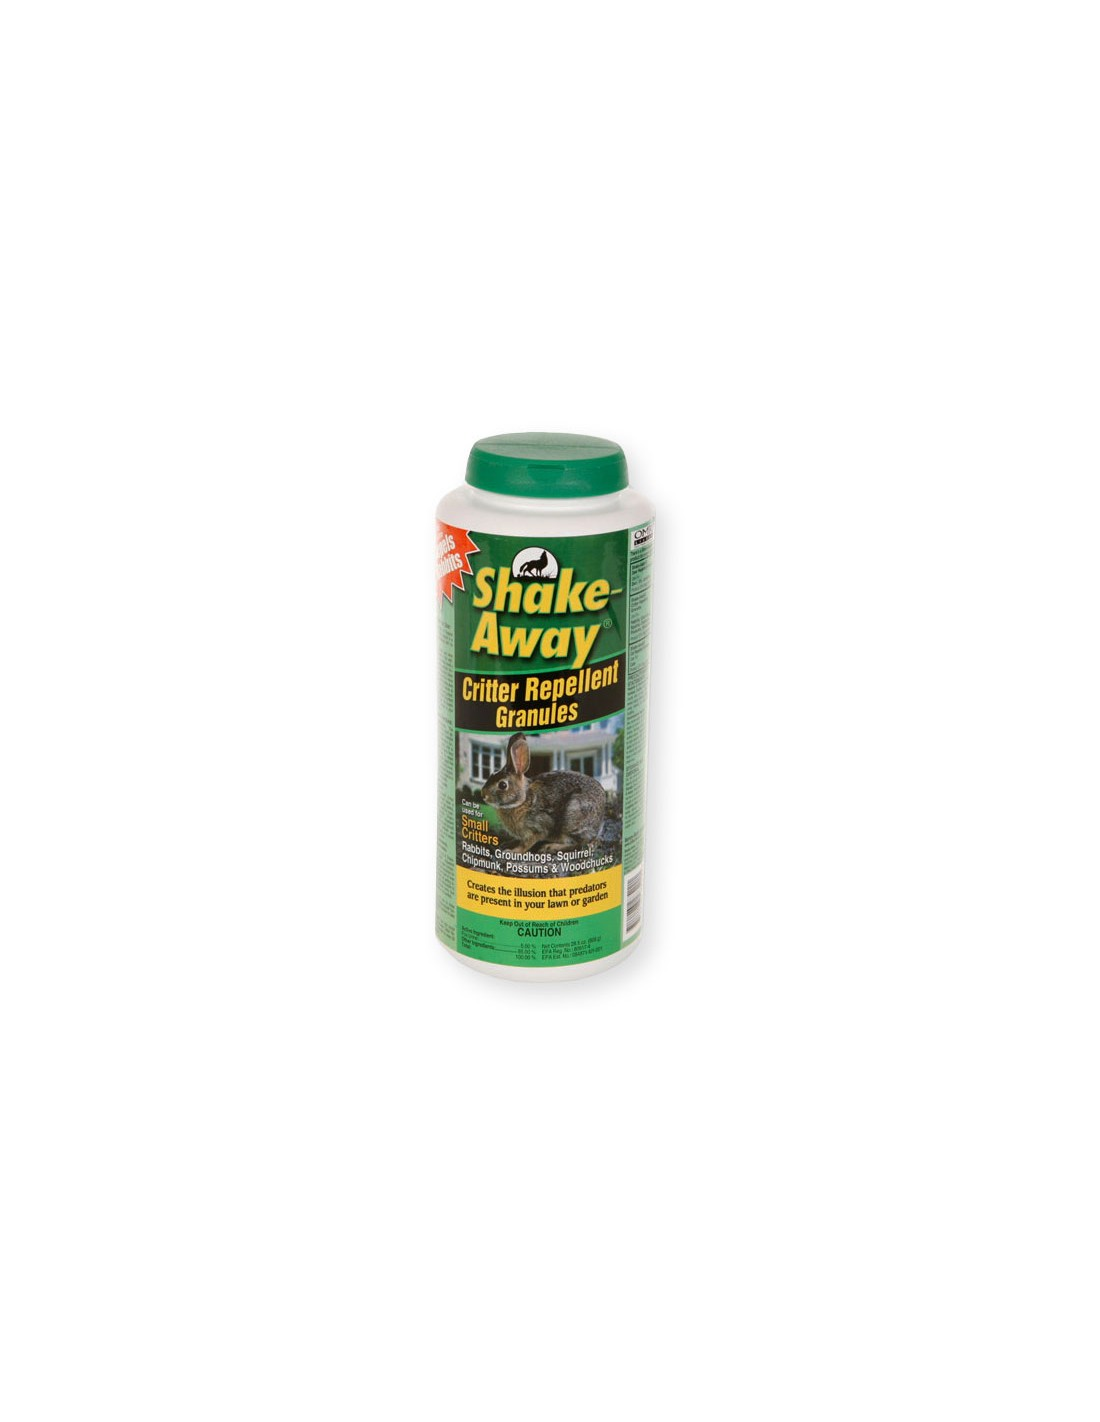 Shake Away Small Critter Repellent Granules